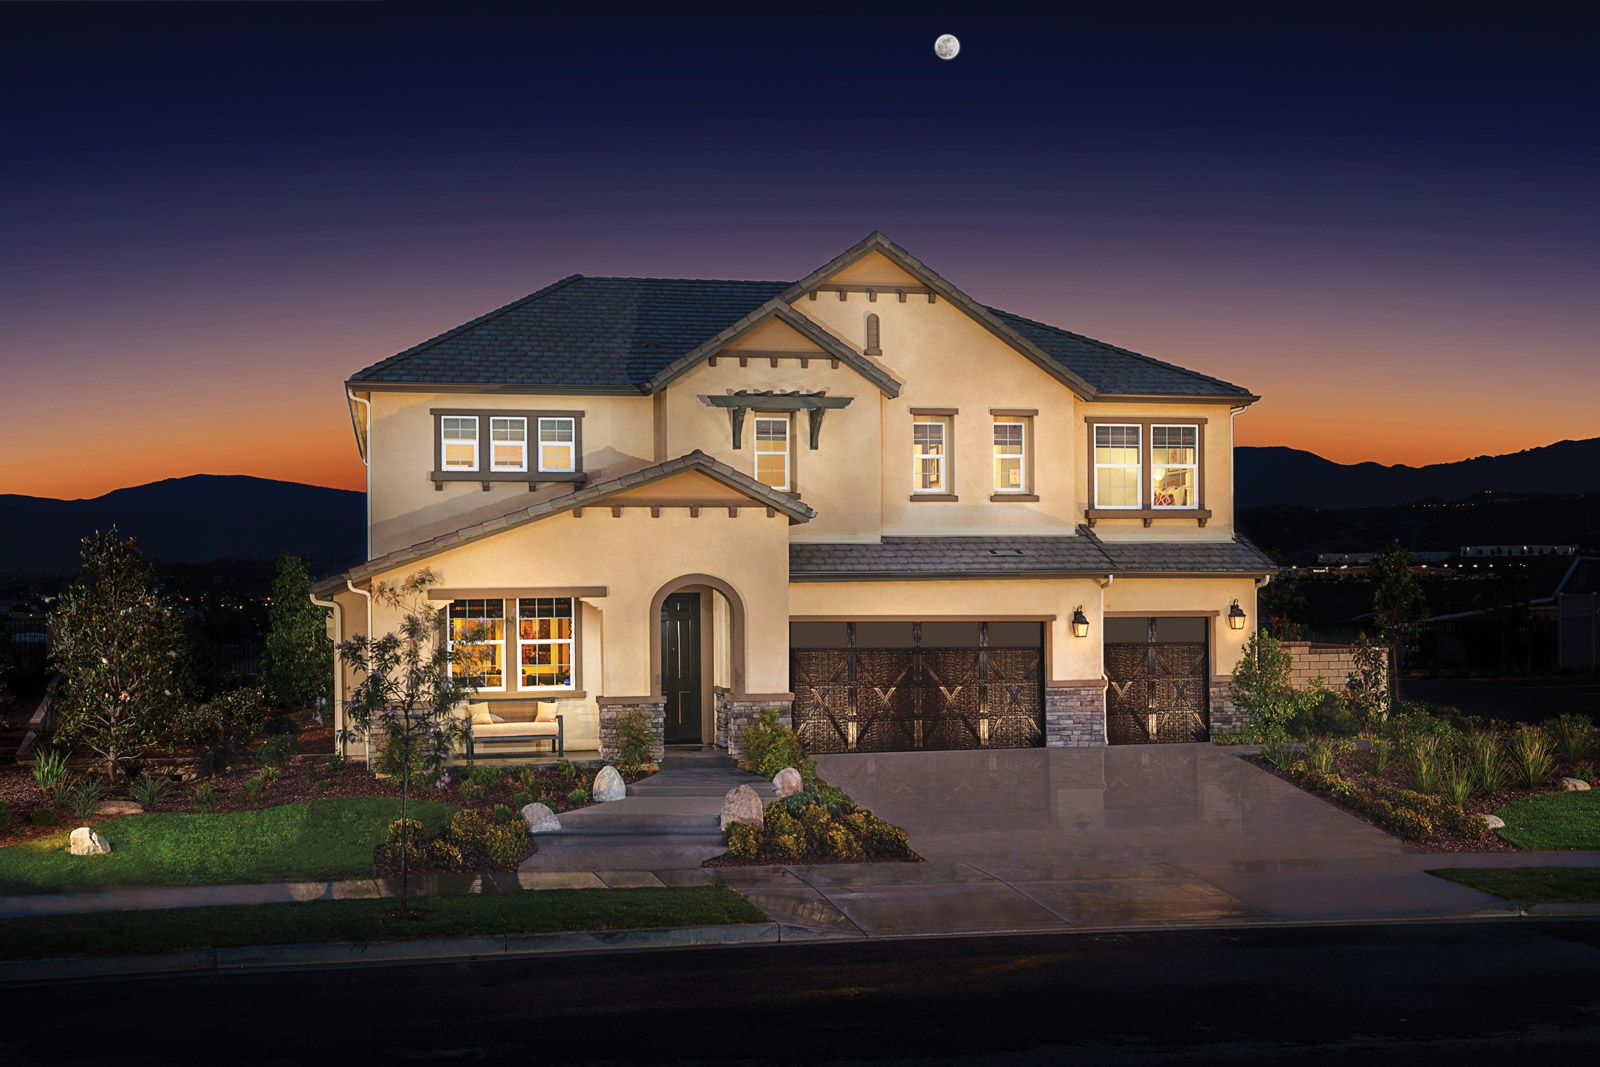 superb find builders in your area #4: New Home Builders In Your Area - Built to Order - KB Home